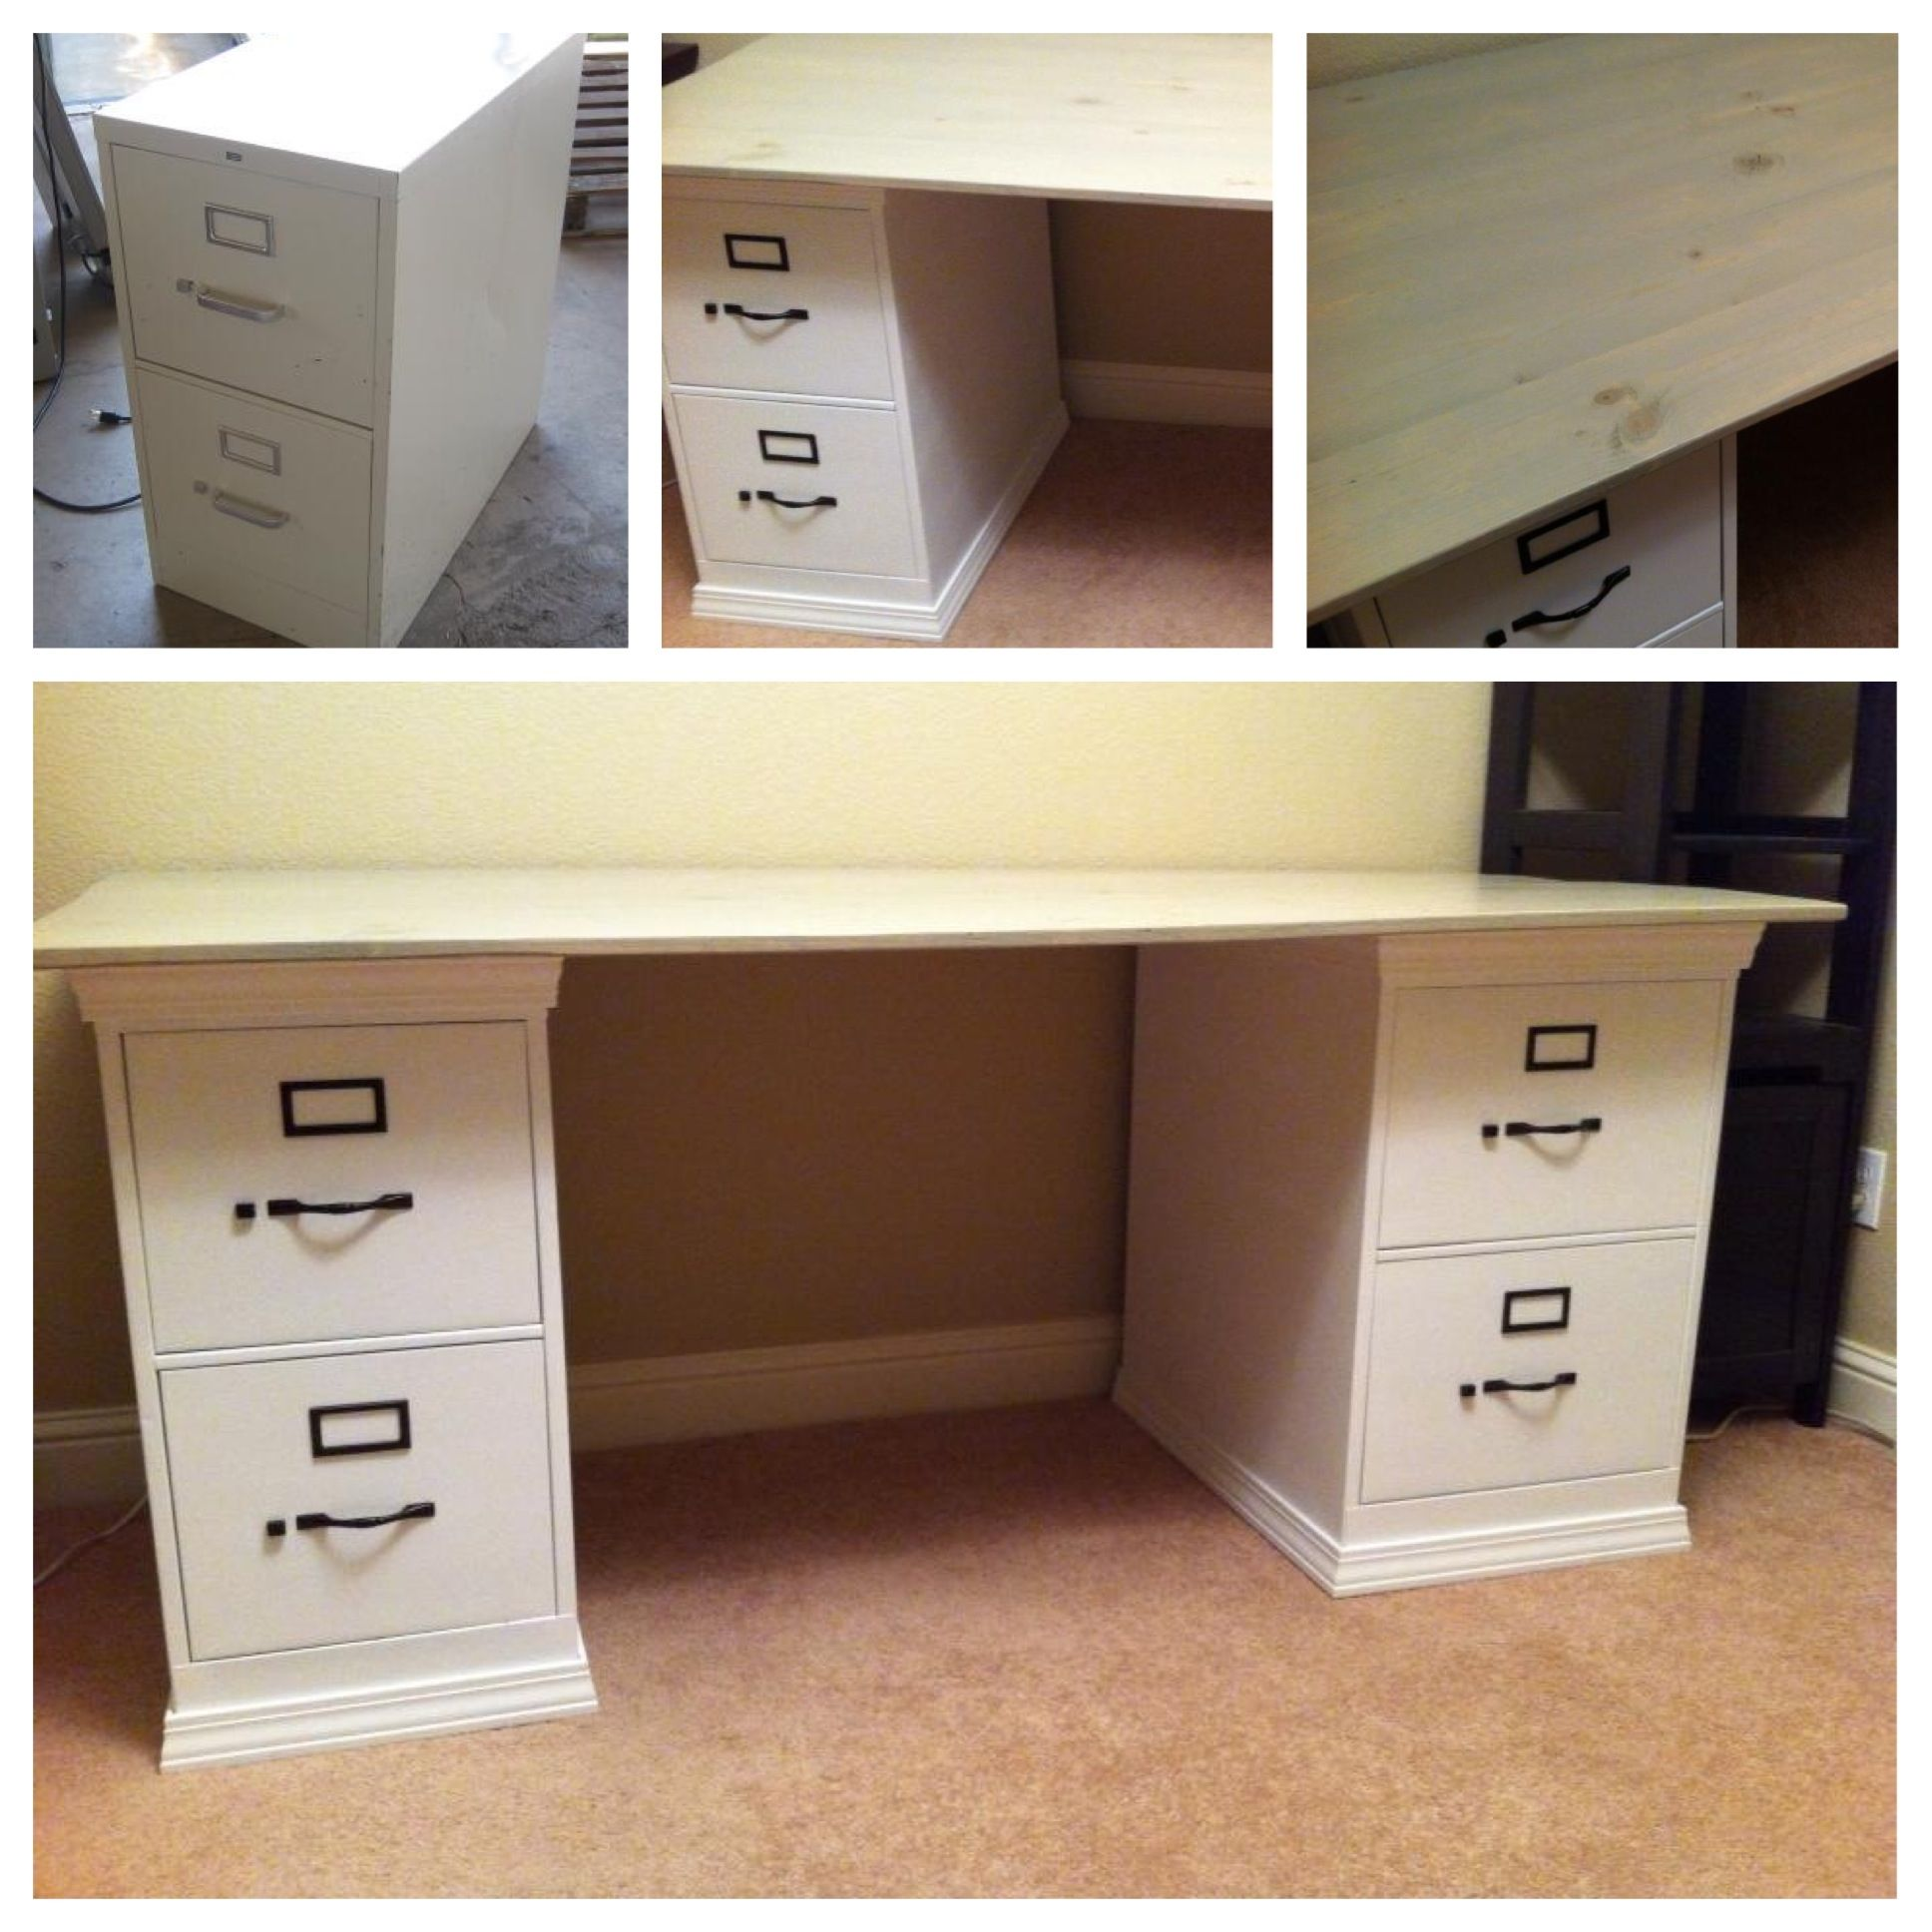 home garden product cabinet filing desk knight free today shipping with overstock beta computer by christopher